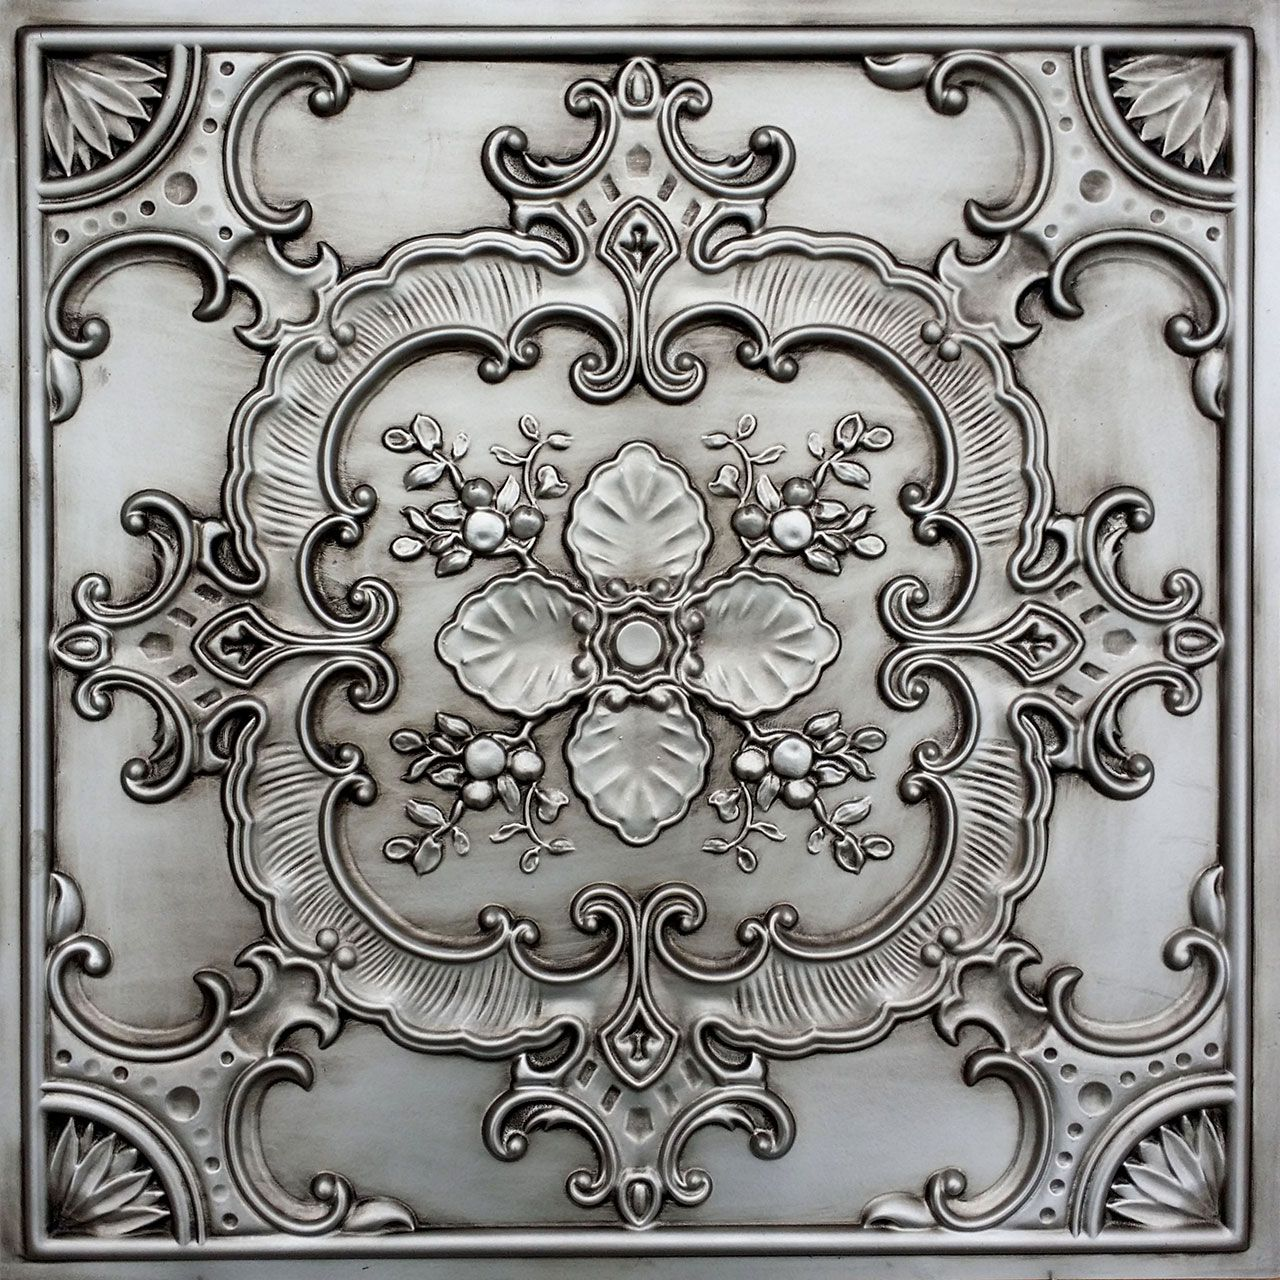 Faux Tin Ceiling Tile – 24 in x 24 in – #DCT 19